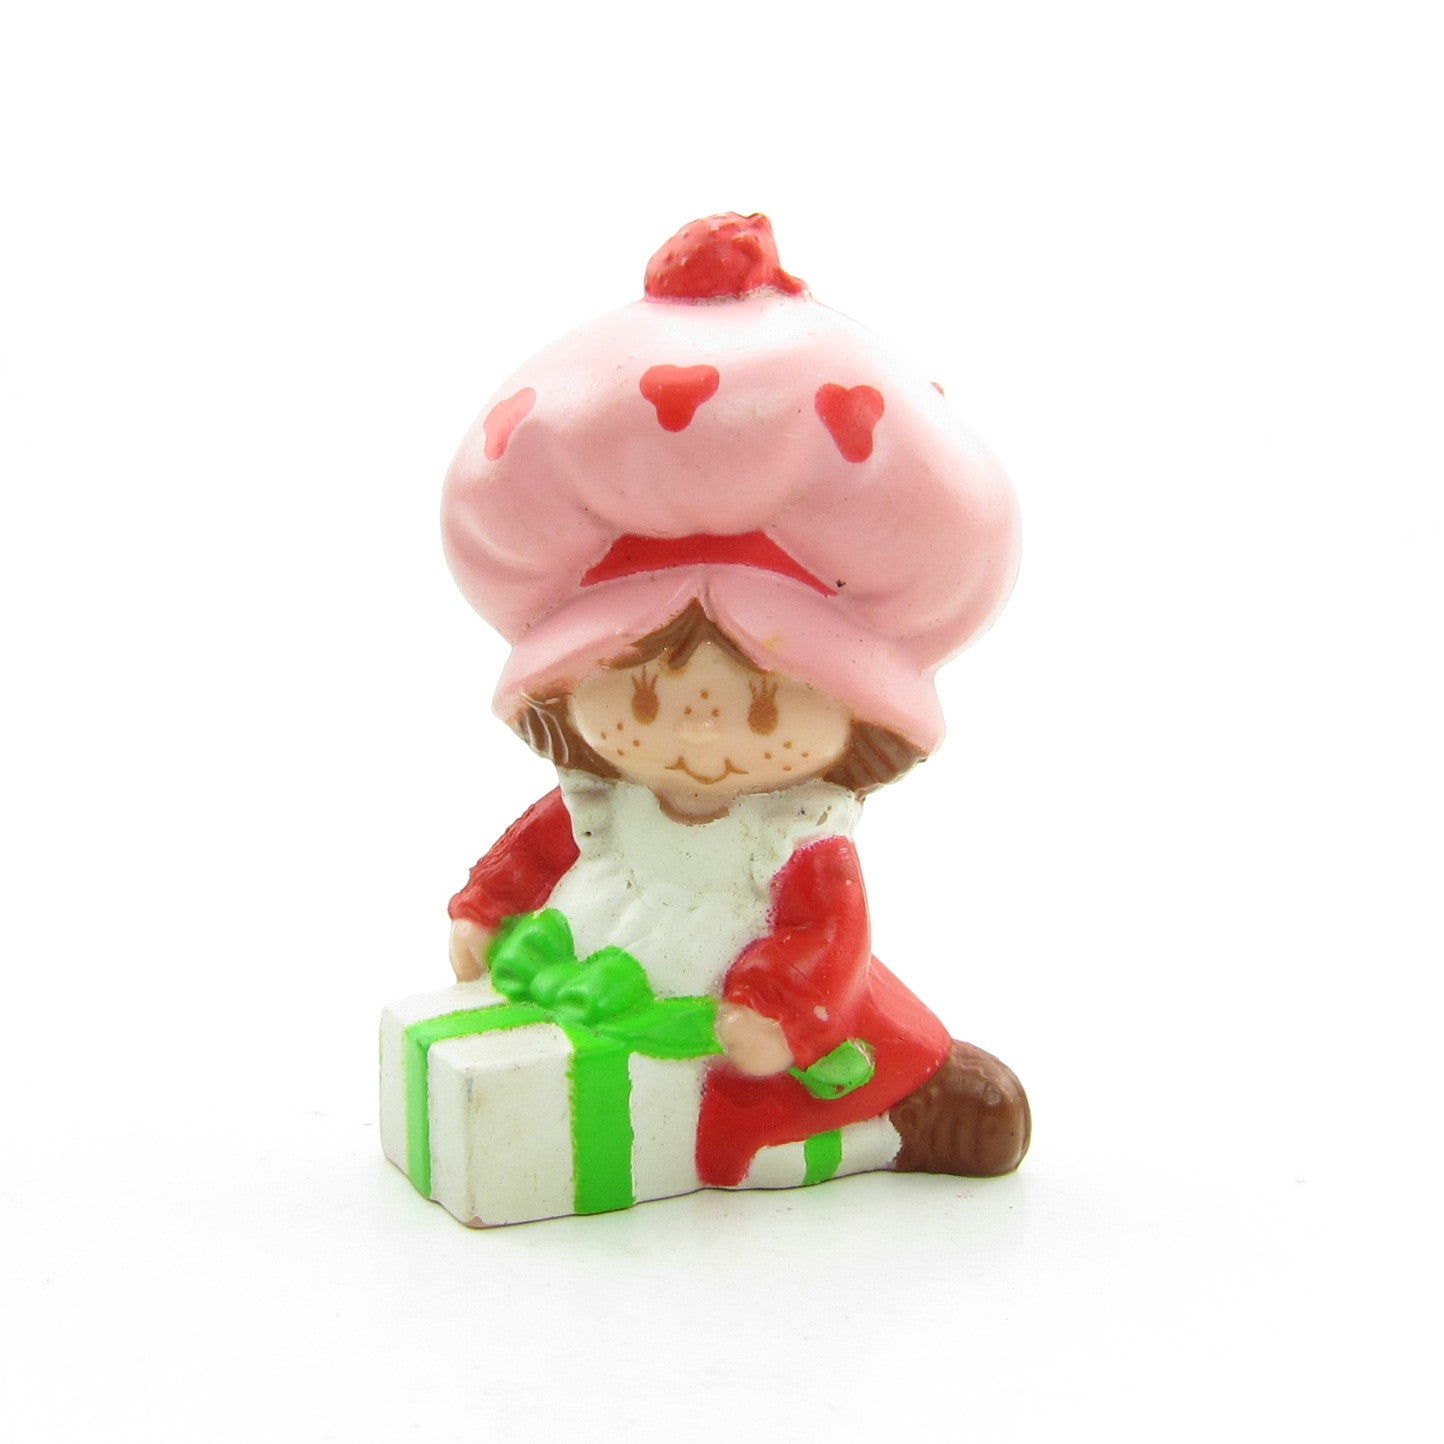 Strawberry Shortcake wrapping a gift miniature figurine